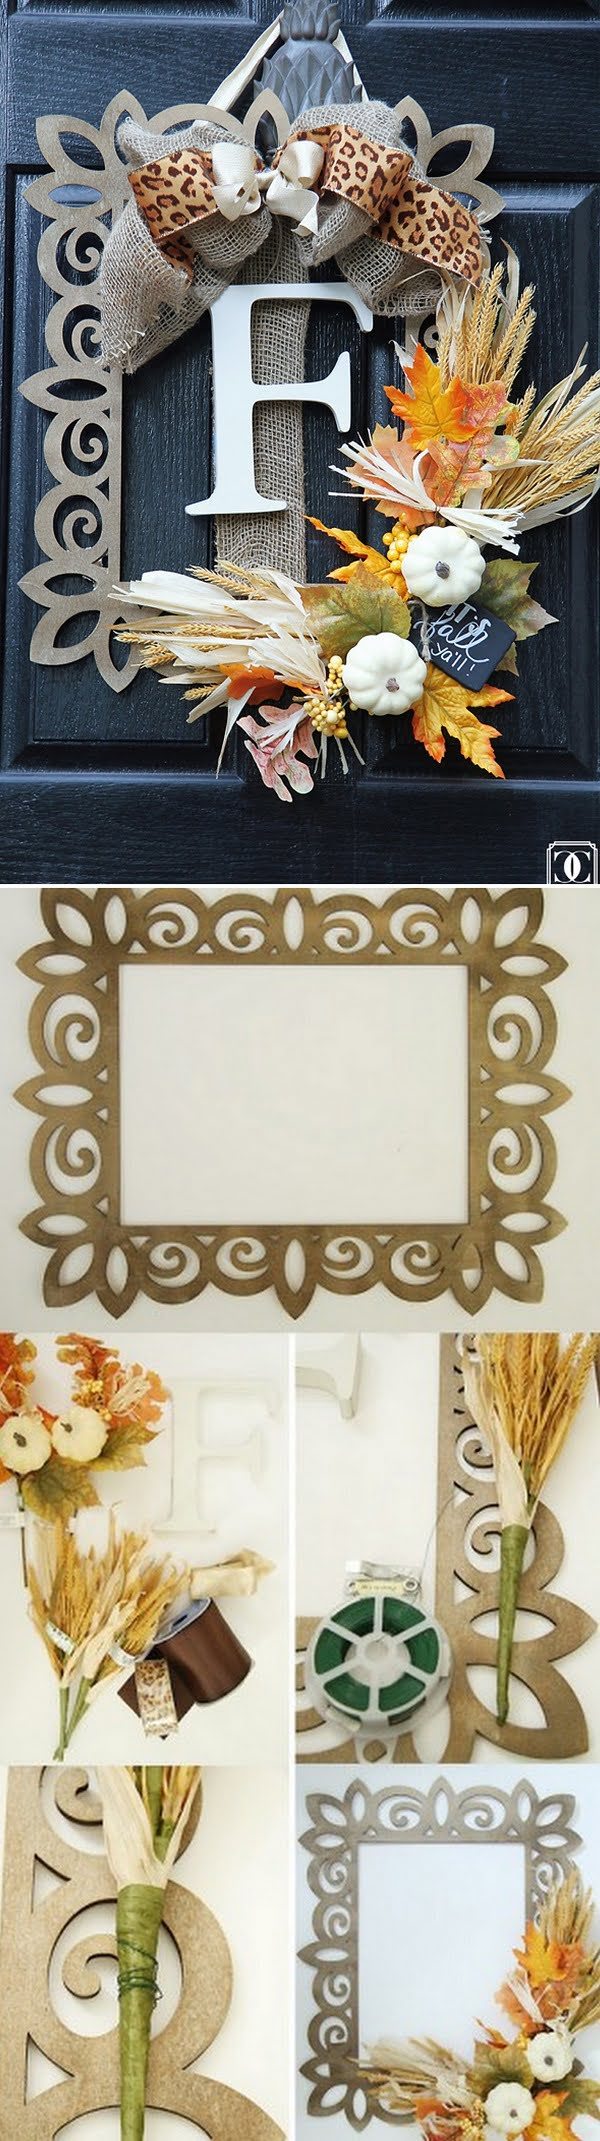 Check out the tutorial on how to make a DIY fall wreath using a wooden frame